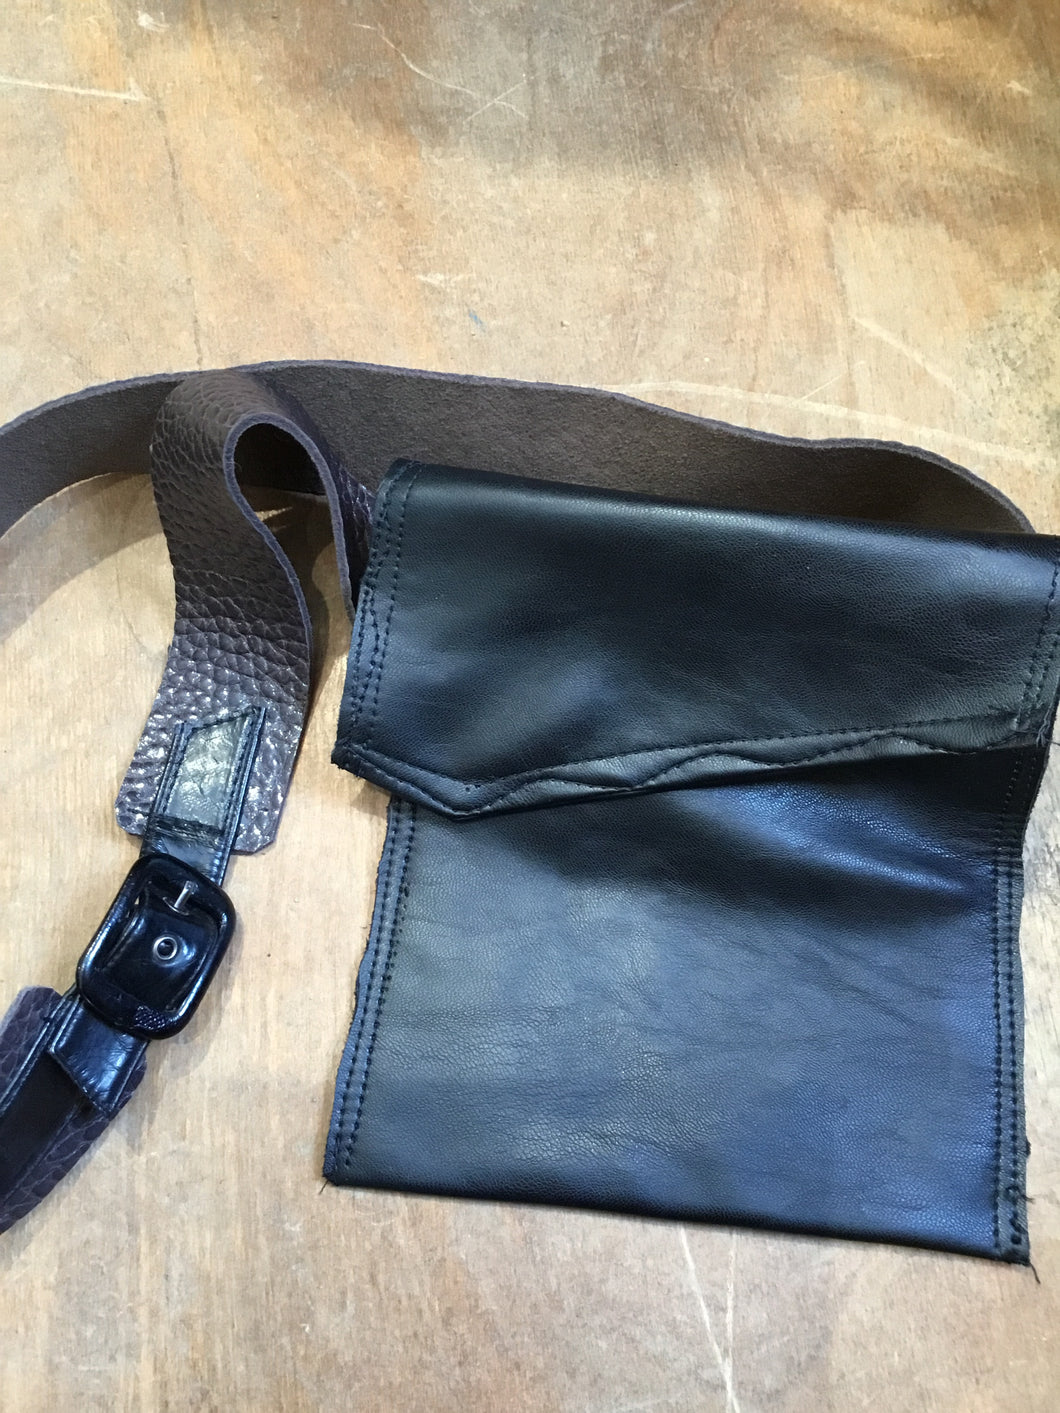 ME1-PB Pouch with Belt